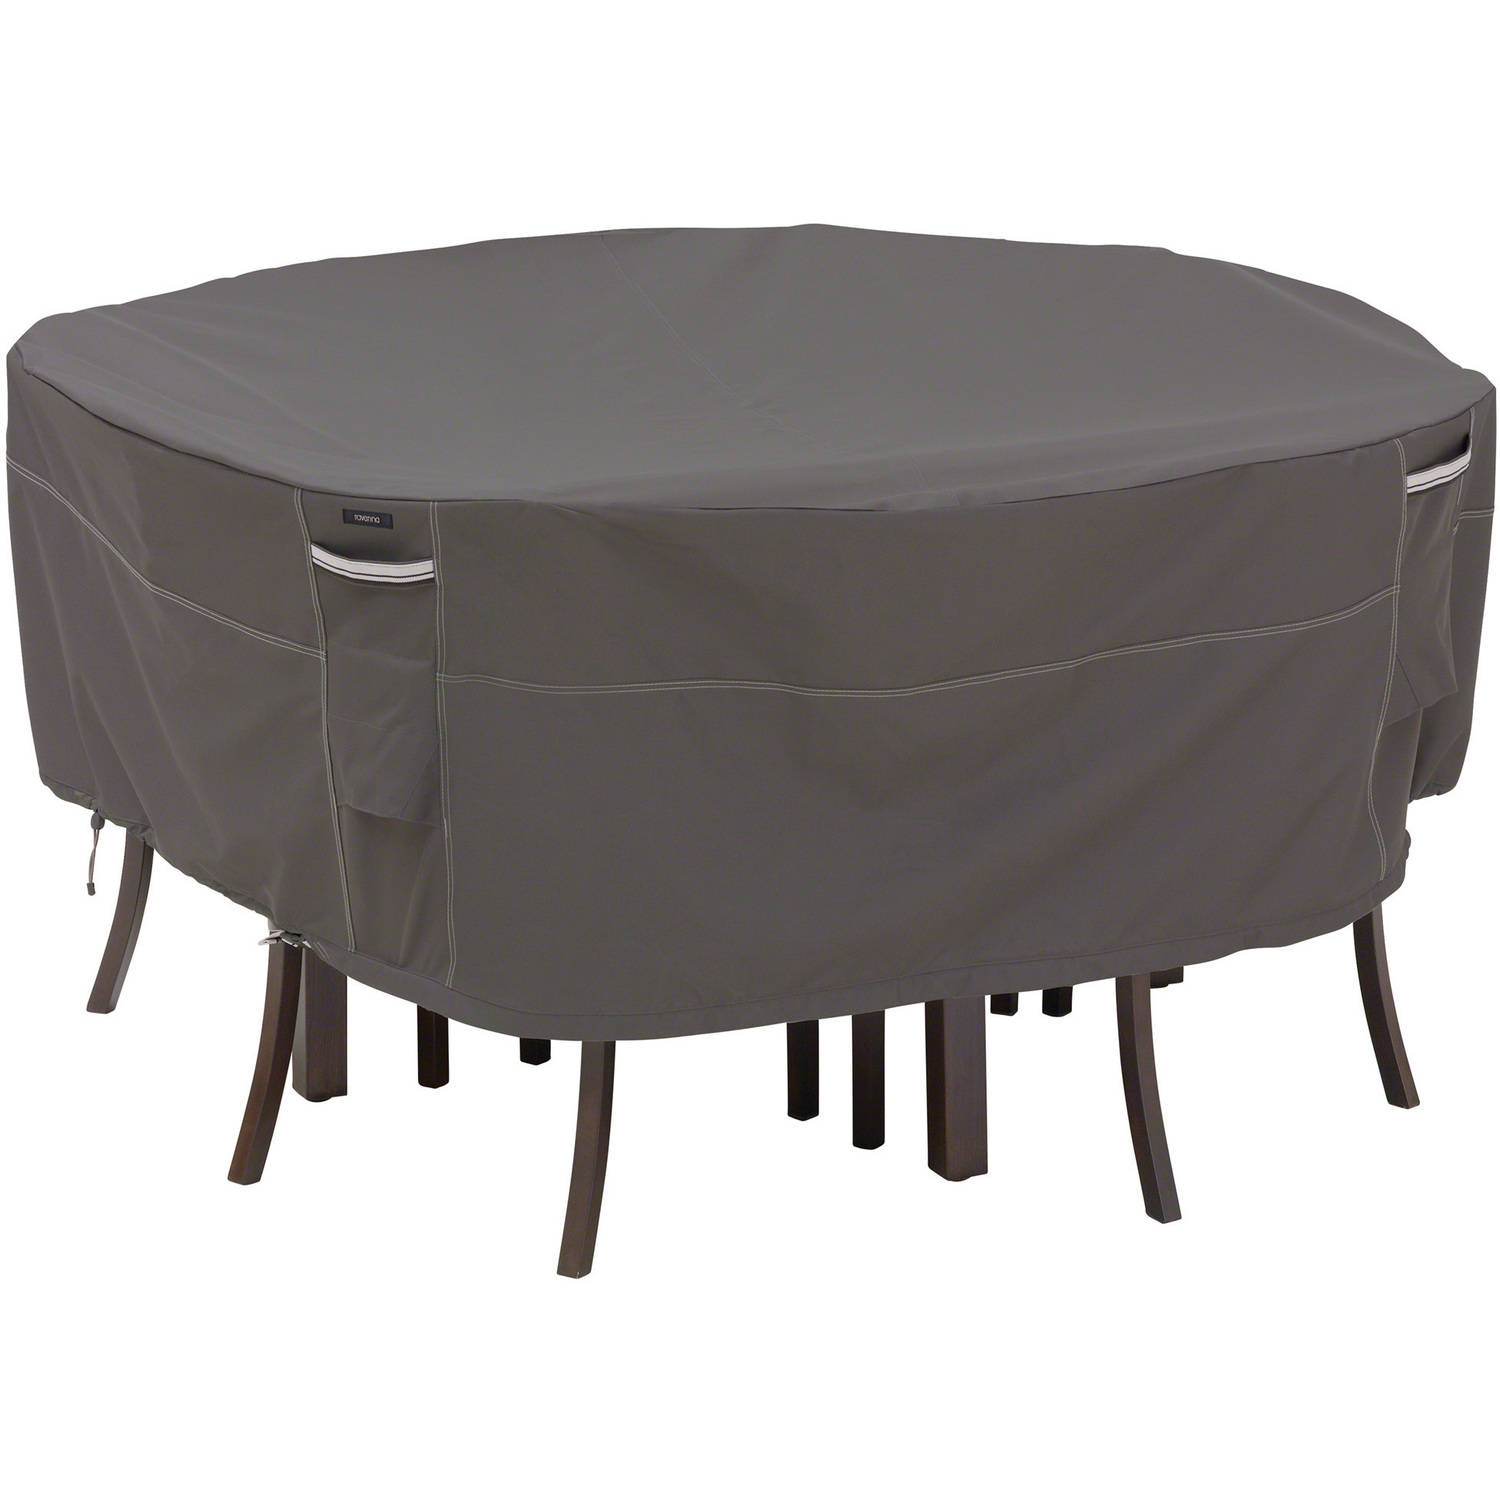 Classic Accessories Ravenna Round Patio Table and Chair Cover - Premium Outdoor Furniture Cover with Durable and Water Resistant Fabric, Medium, Taupe (55-157-035101-EC)